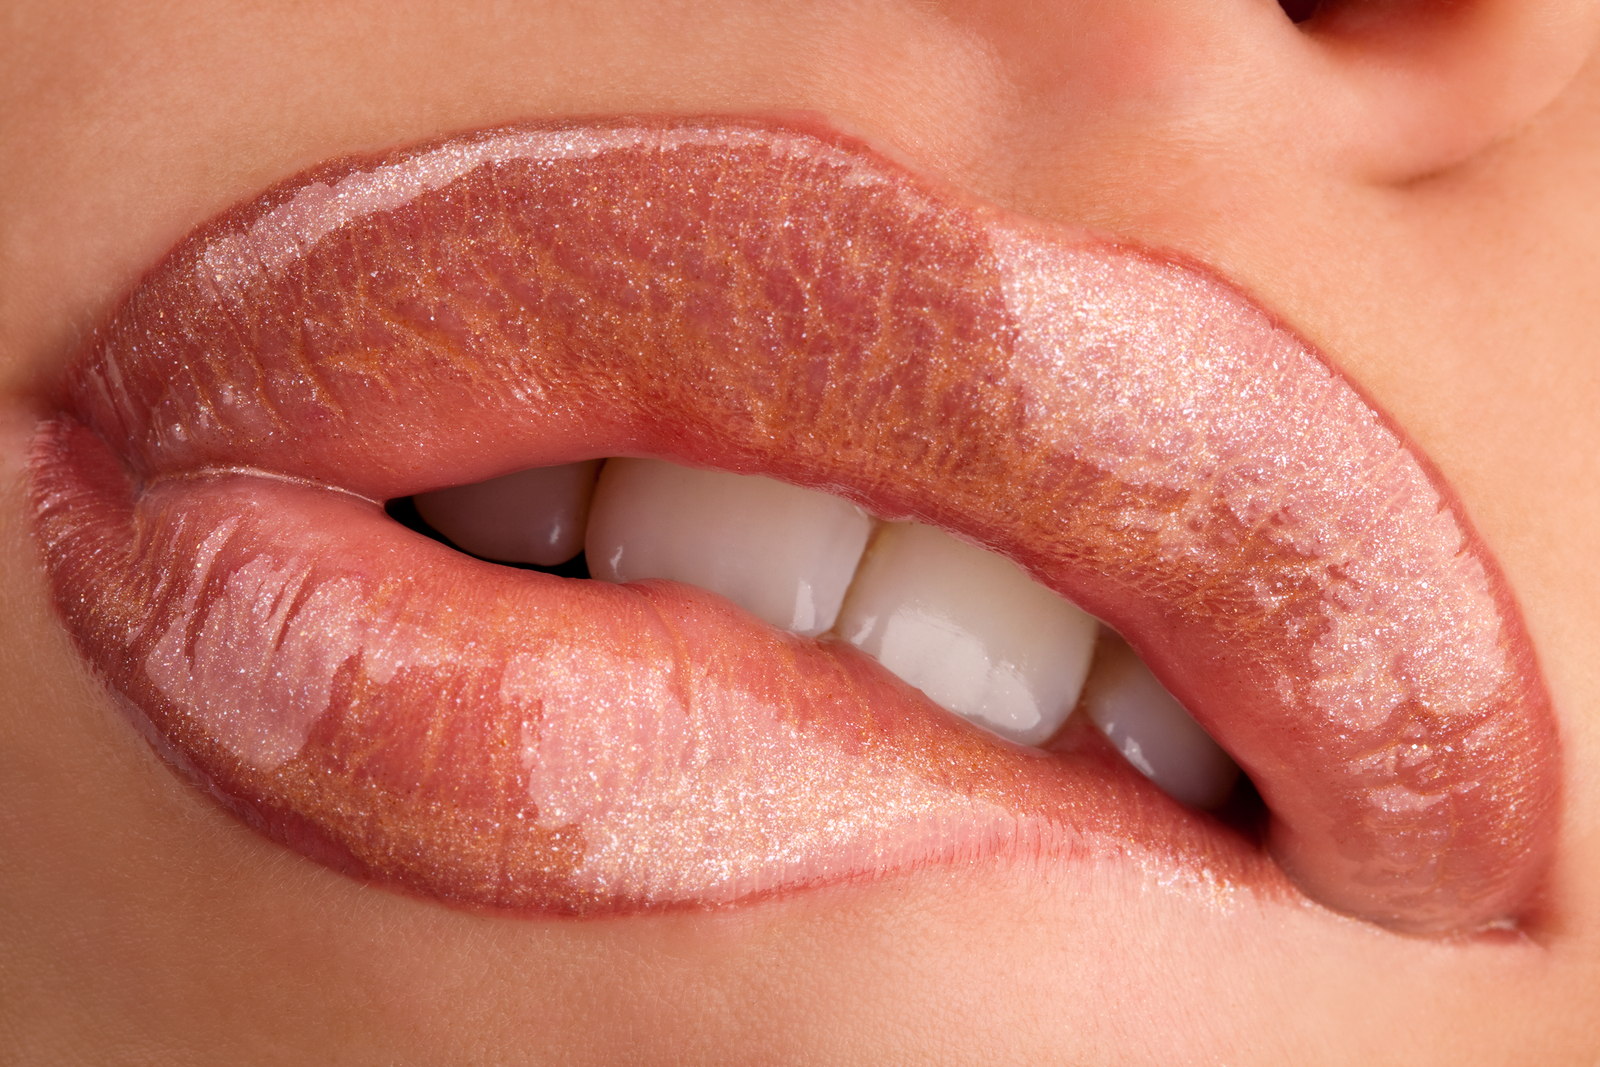 Clits and lips